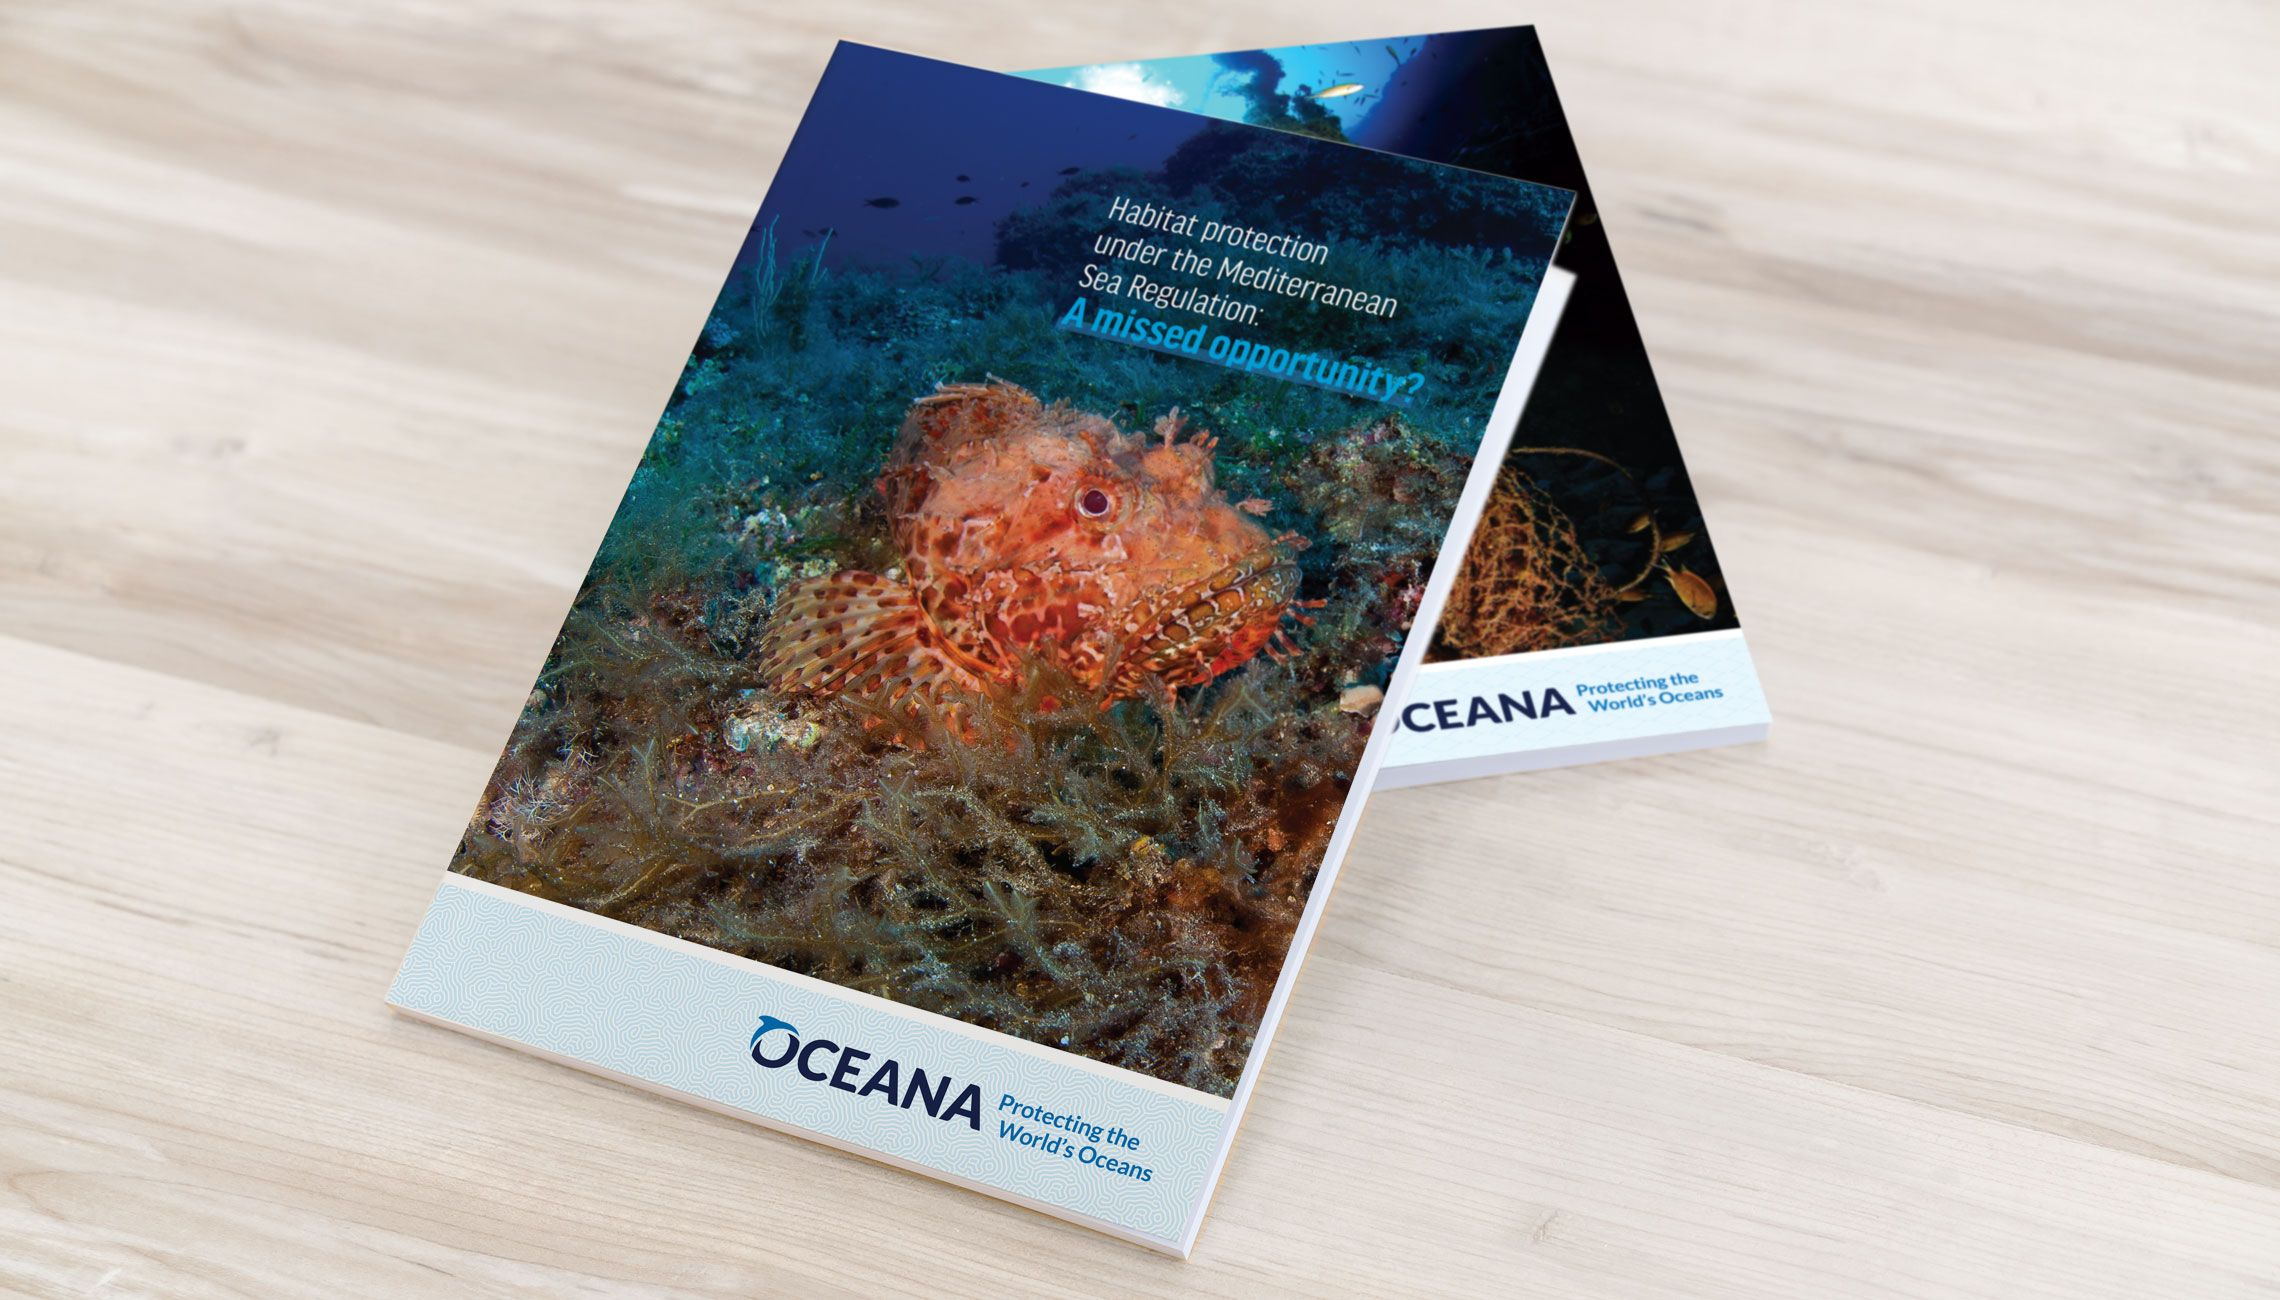 publication: Publications on marine reserves and the Mediterranean Sea Regulation - image 1